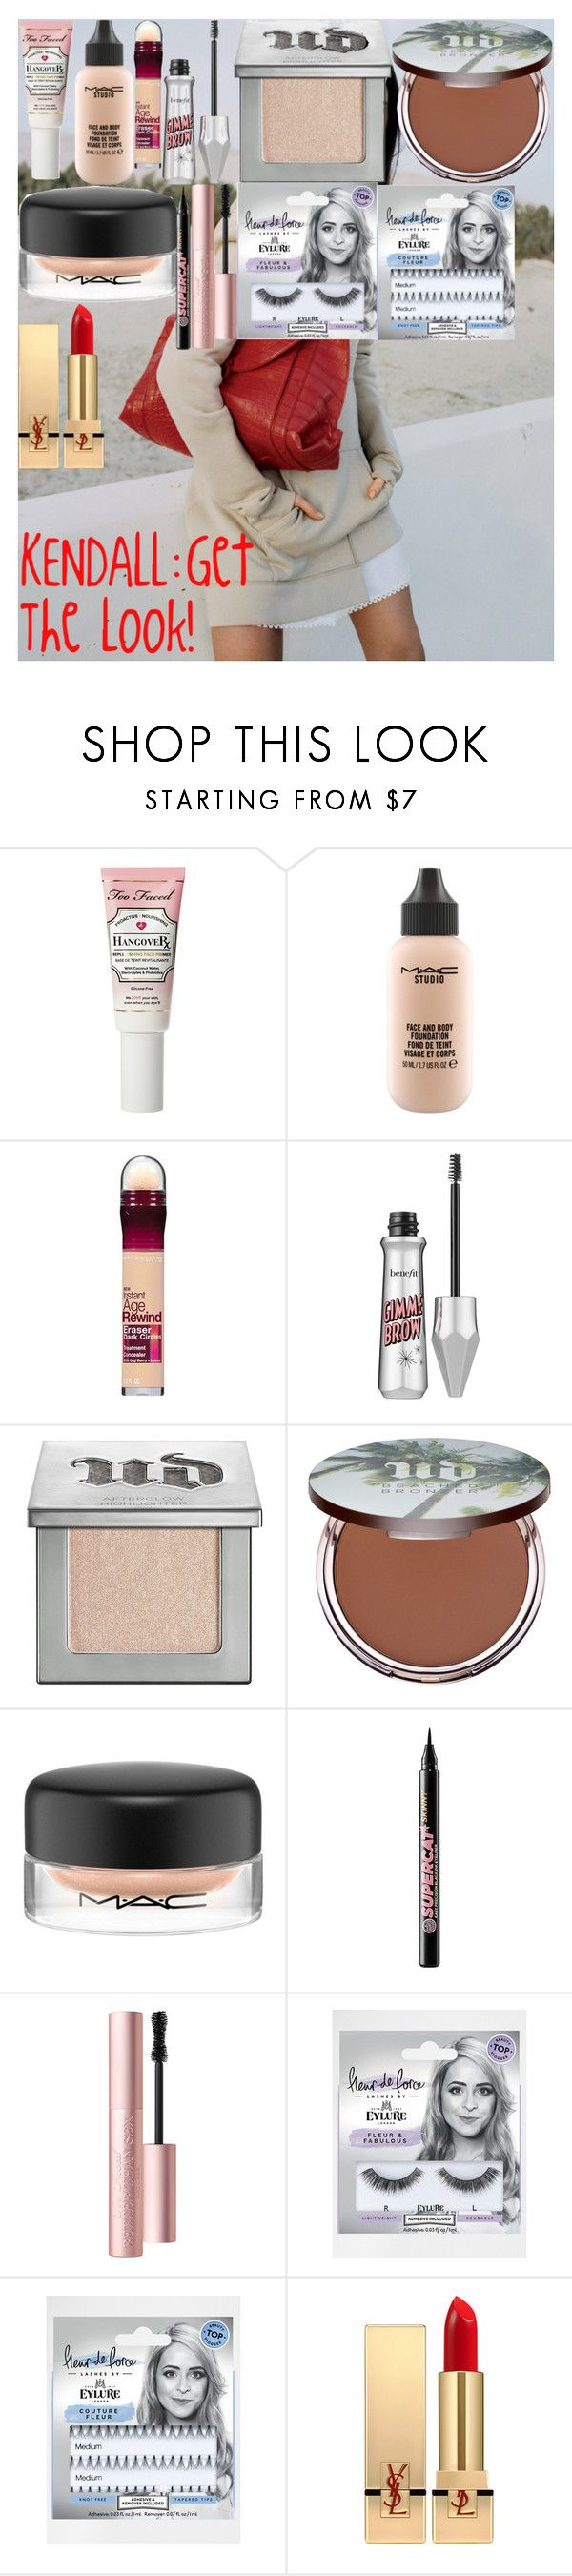 """""""KENDALL:Get The Look!"""" by oroartye-1 on Polyvore featuring beauty, Angelo, Power of Makeup, MAC Cosmetics, Maybelline, Benefit, Urban Decay, Soap & Glory, Too Faced Cosmetics and eylure"""